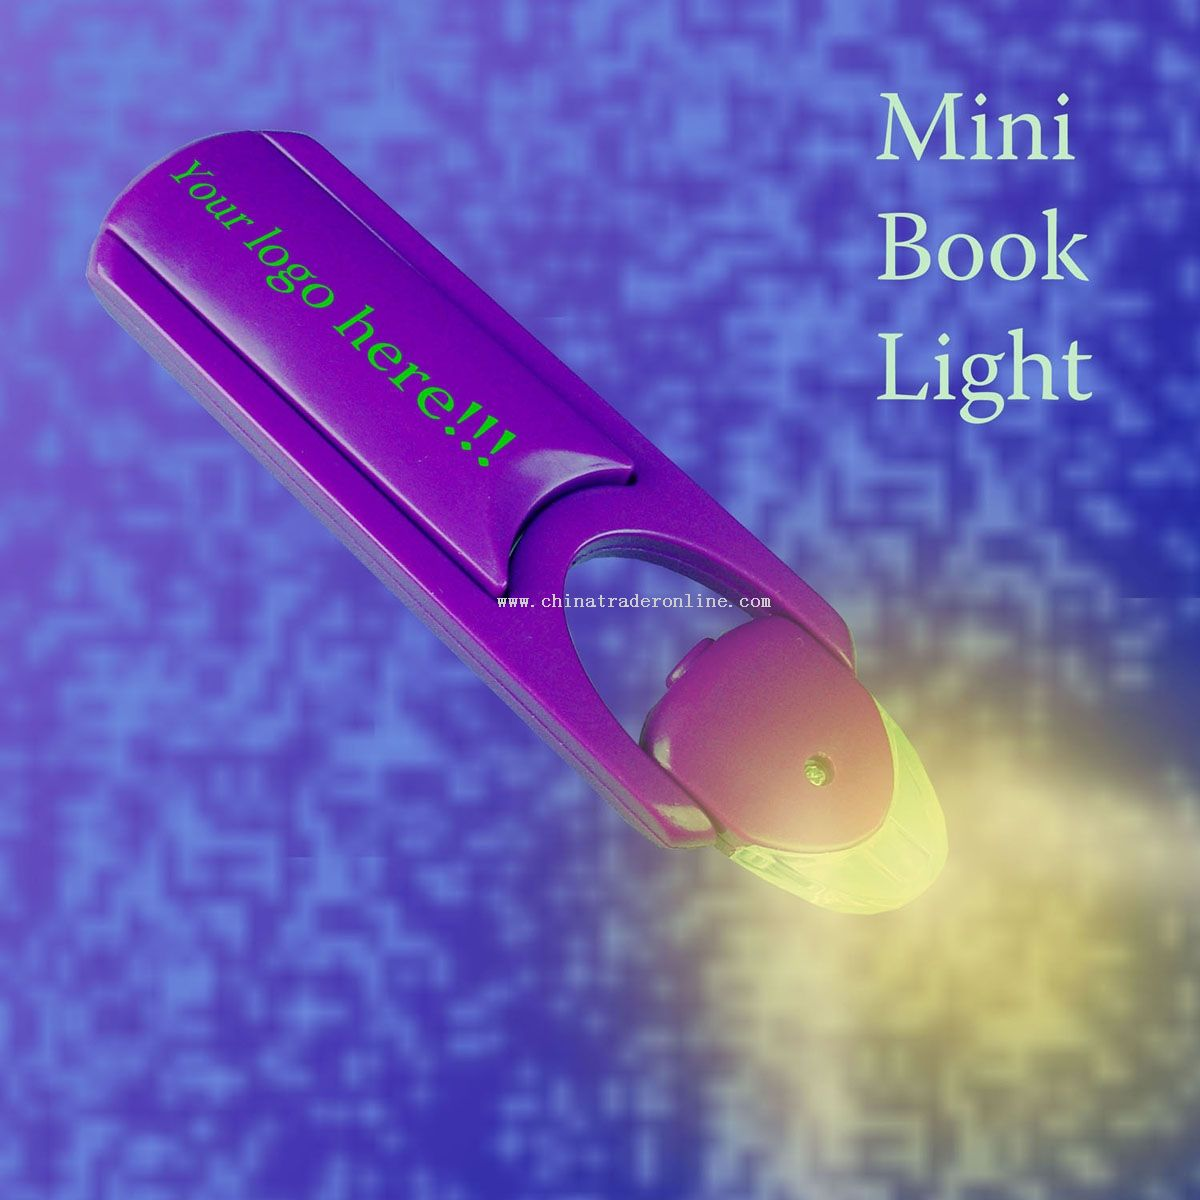 Lighted Book Light